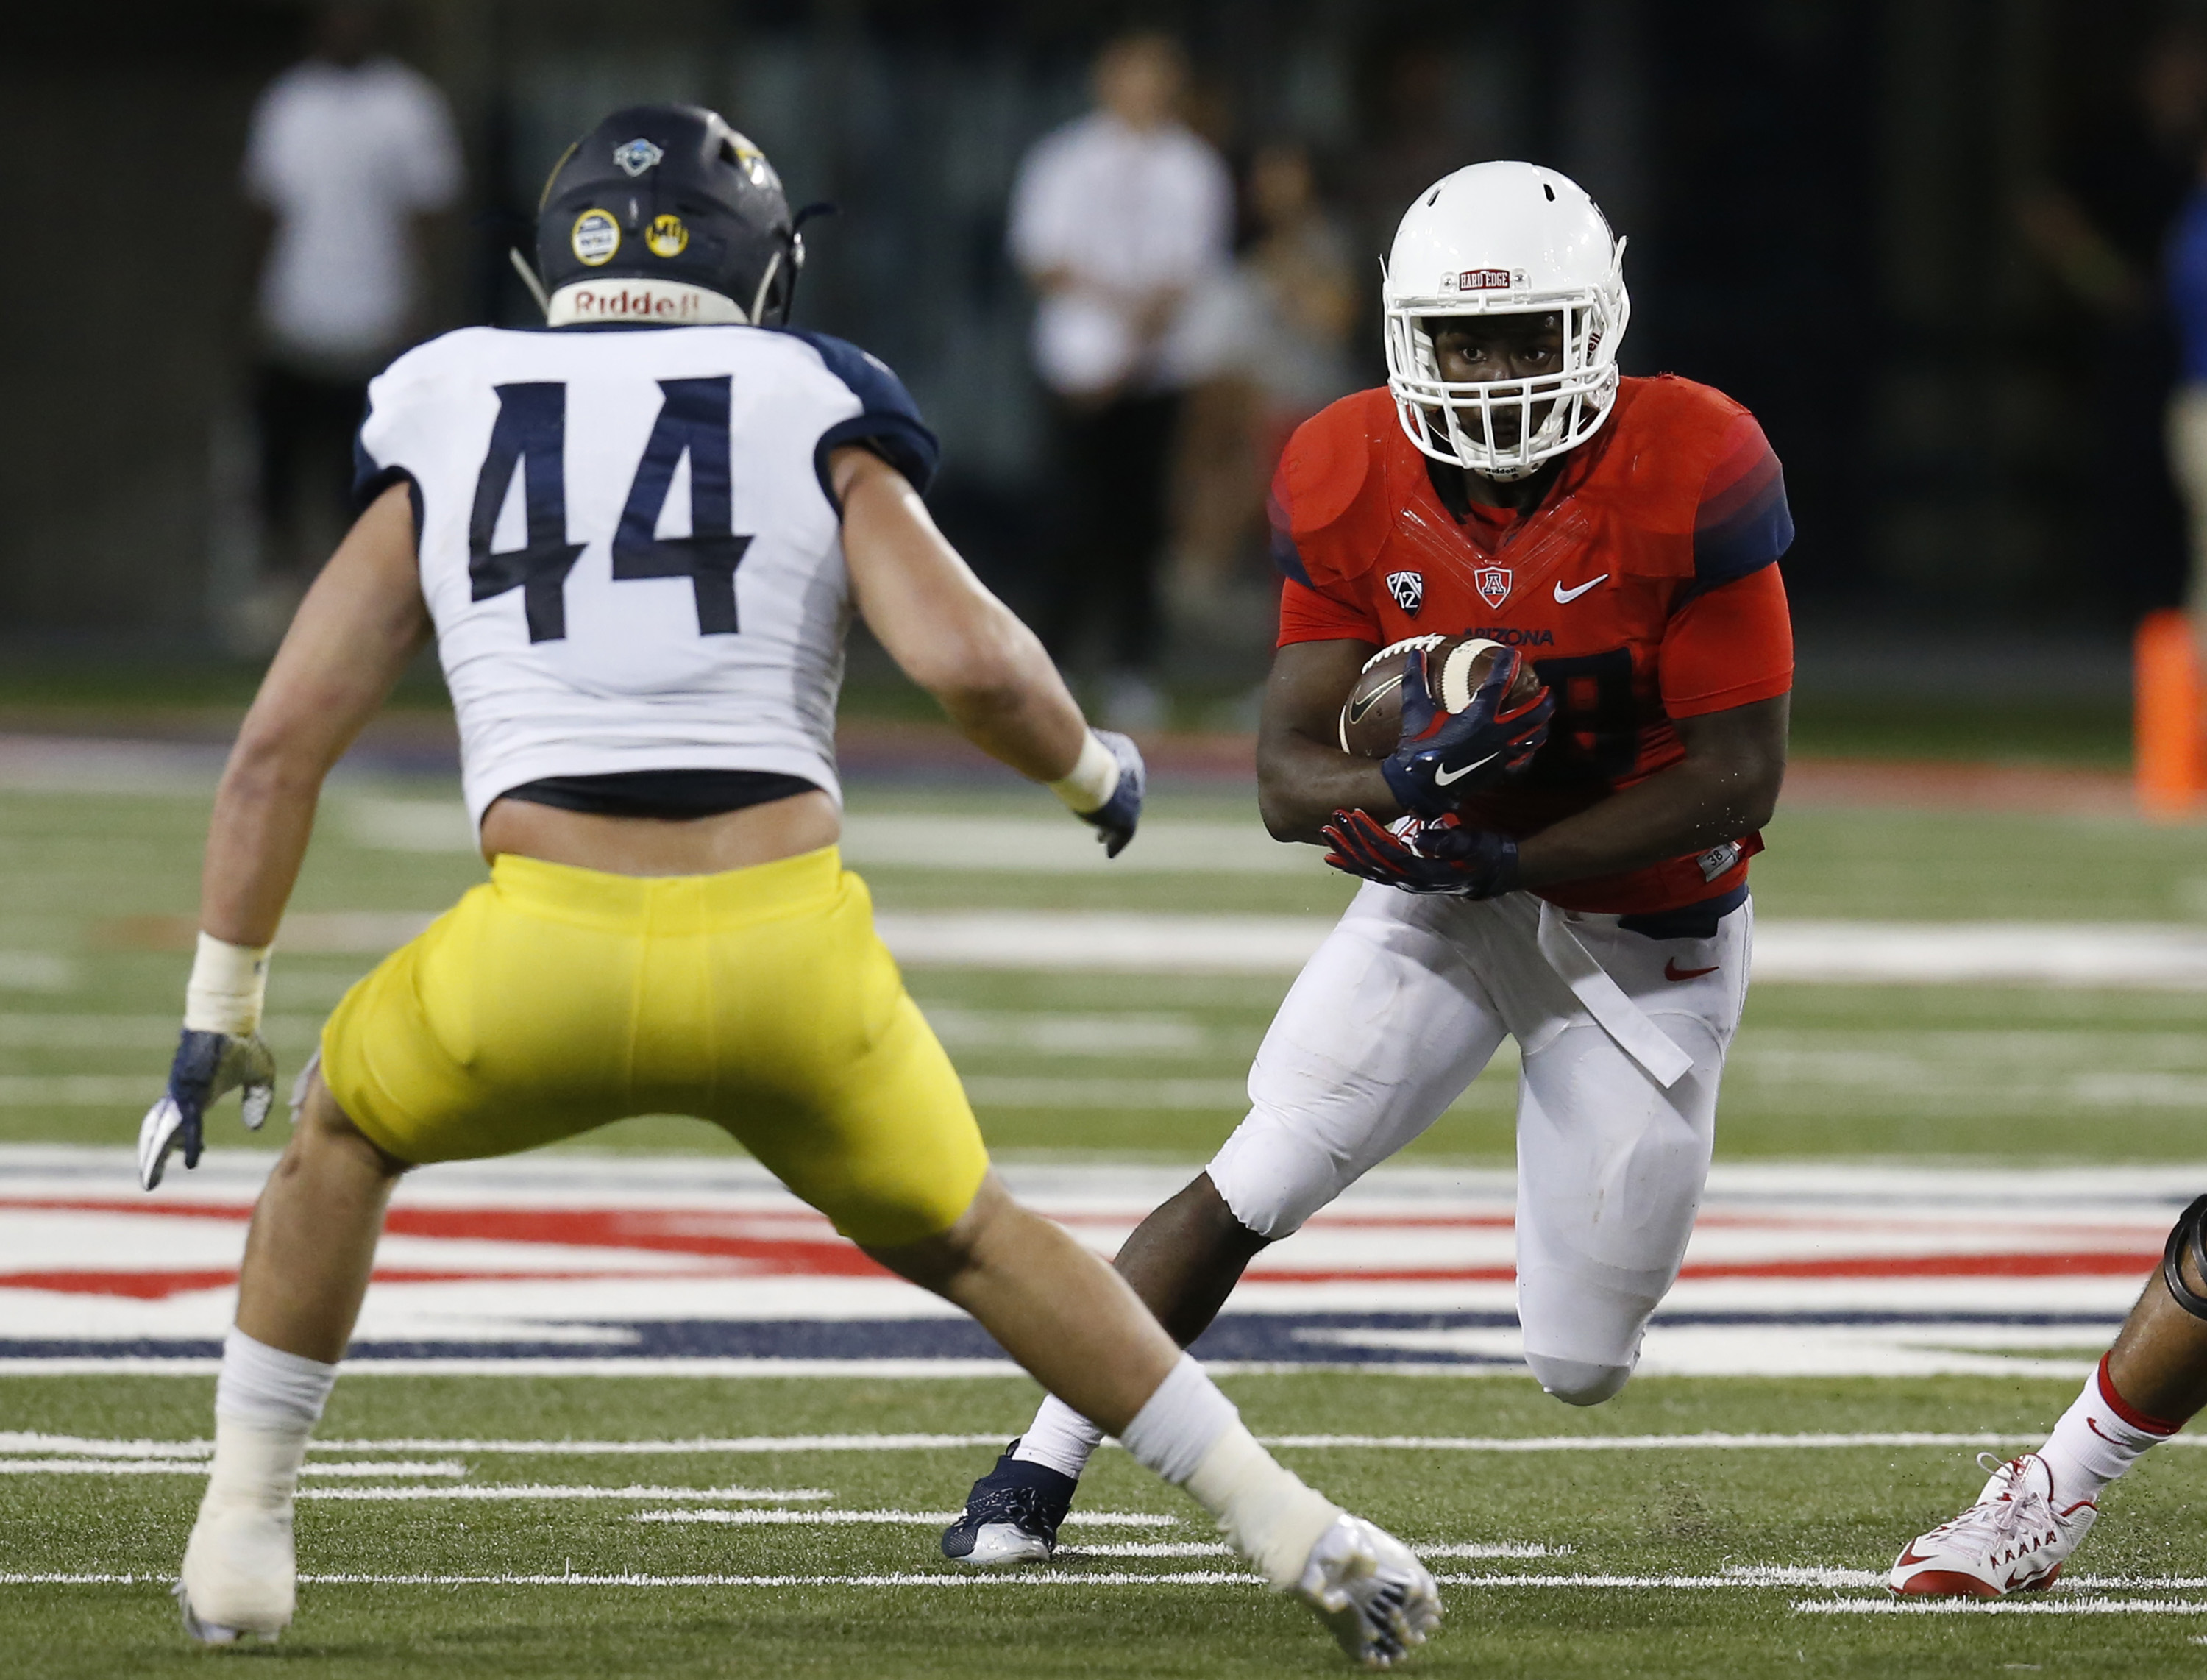 Arizona running back Nick Wilson carries for a first down in front of Northern Arizona linebacker Jake Thomas (44) during the first half of an NCAA college football game, Saturday, Sept. 19, 2015, in Tucson, Ariz. (AP Photo/Rick Scuteri)